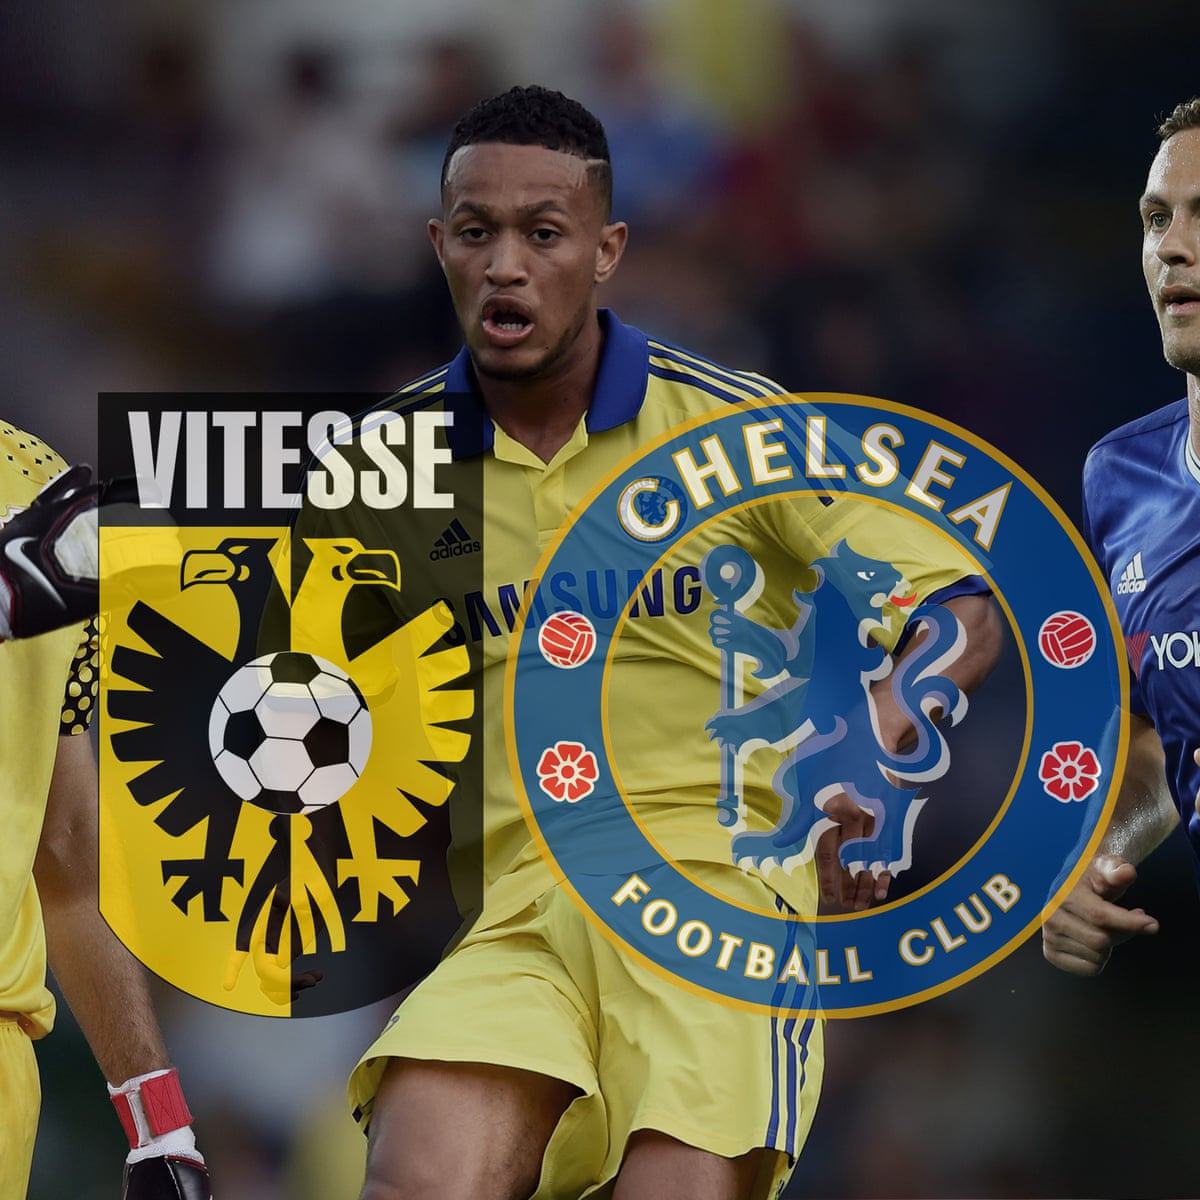 How Chelsea S Links To Vitesse Arnhem Run Deeper Than The Public Was Told David Conn Football The Guardian